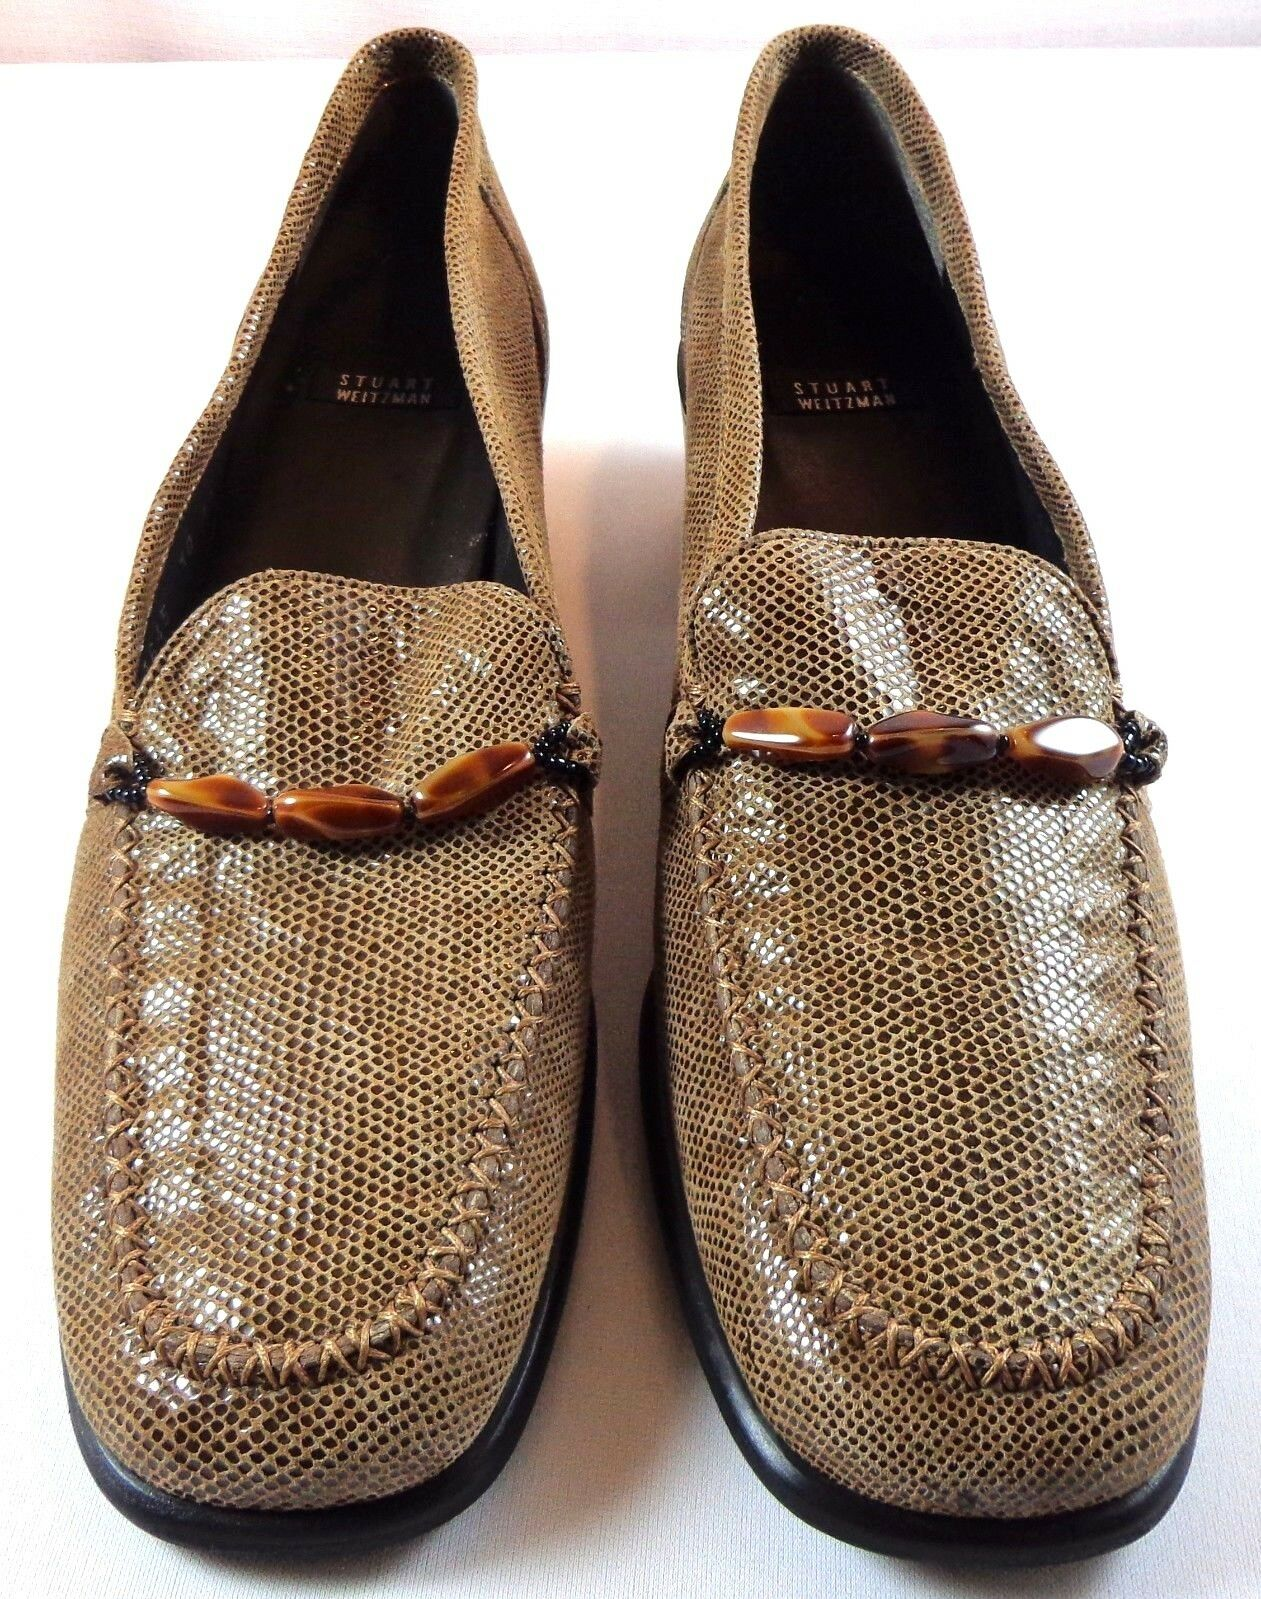 Stuart Weitzman Pumps Womens Brown Animal Print Slip On shoes Size 10 AA